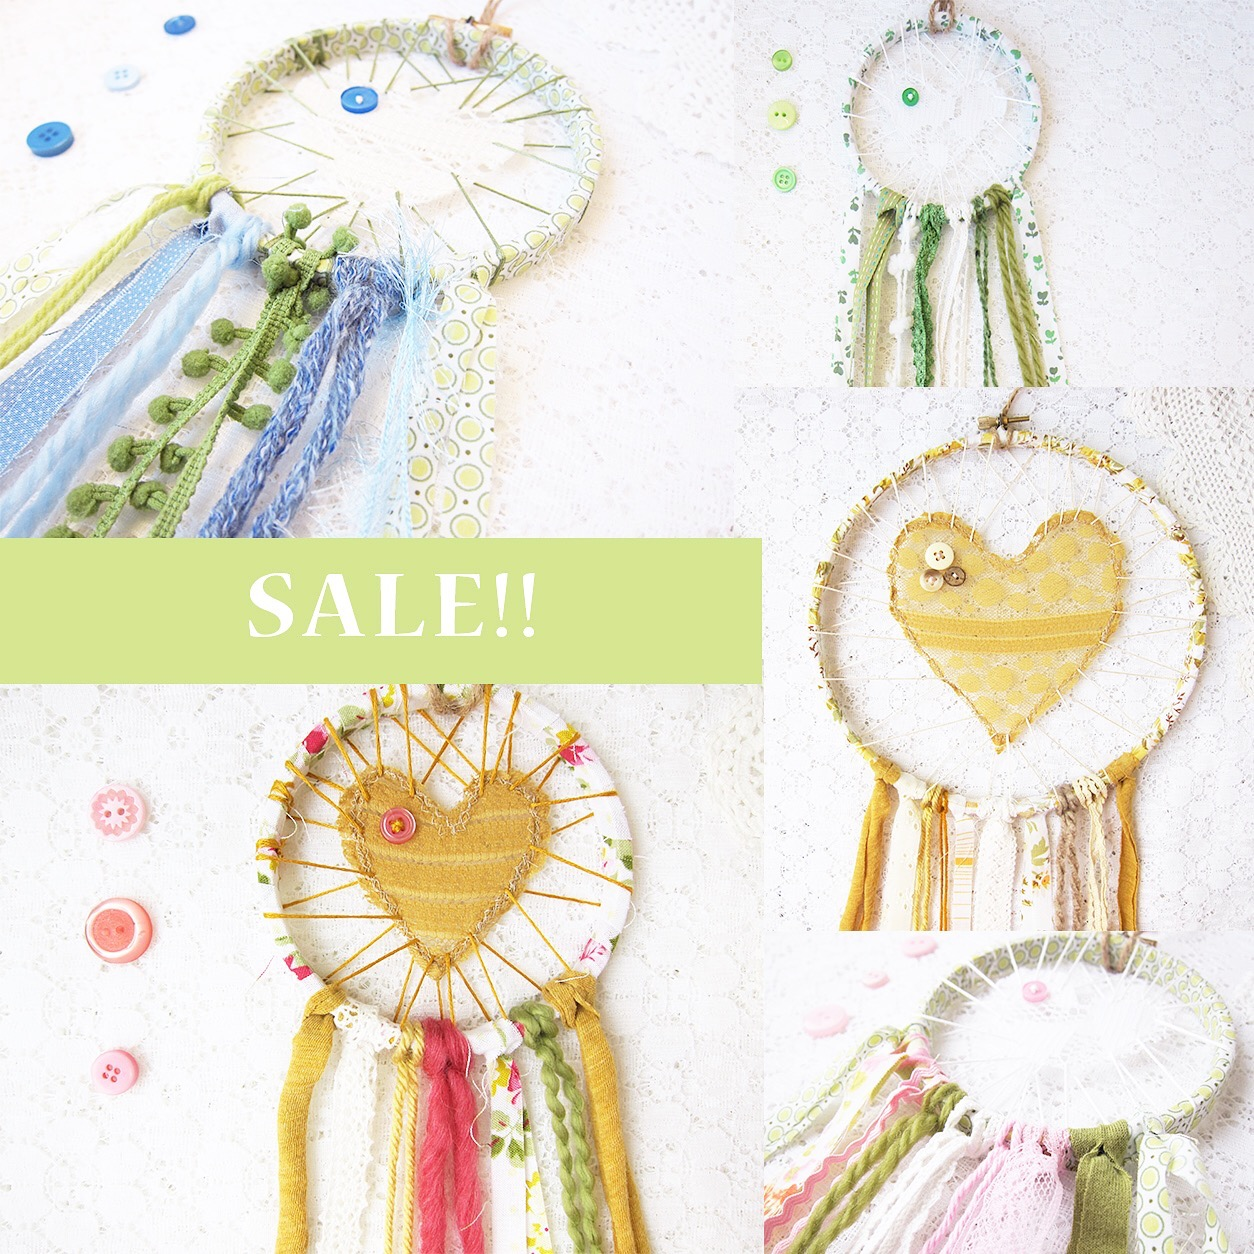 Bubblegum Sass Etsy shop Love Catcher sale ~ Lace Dreamcatchers for little ones